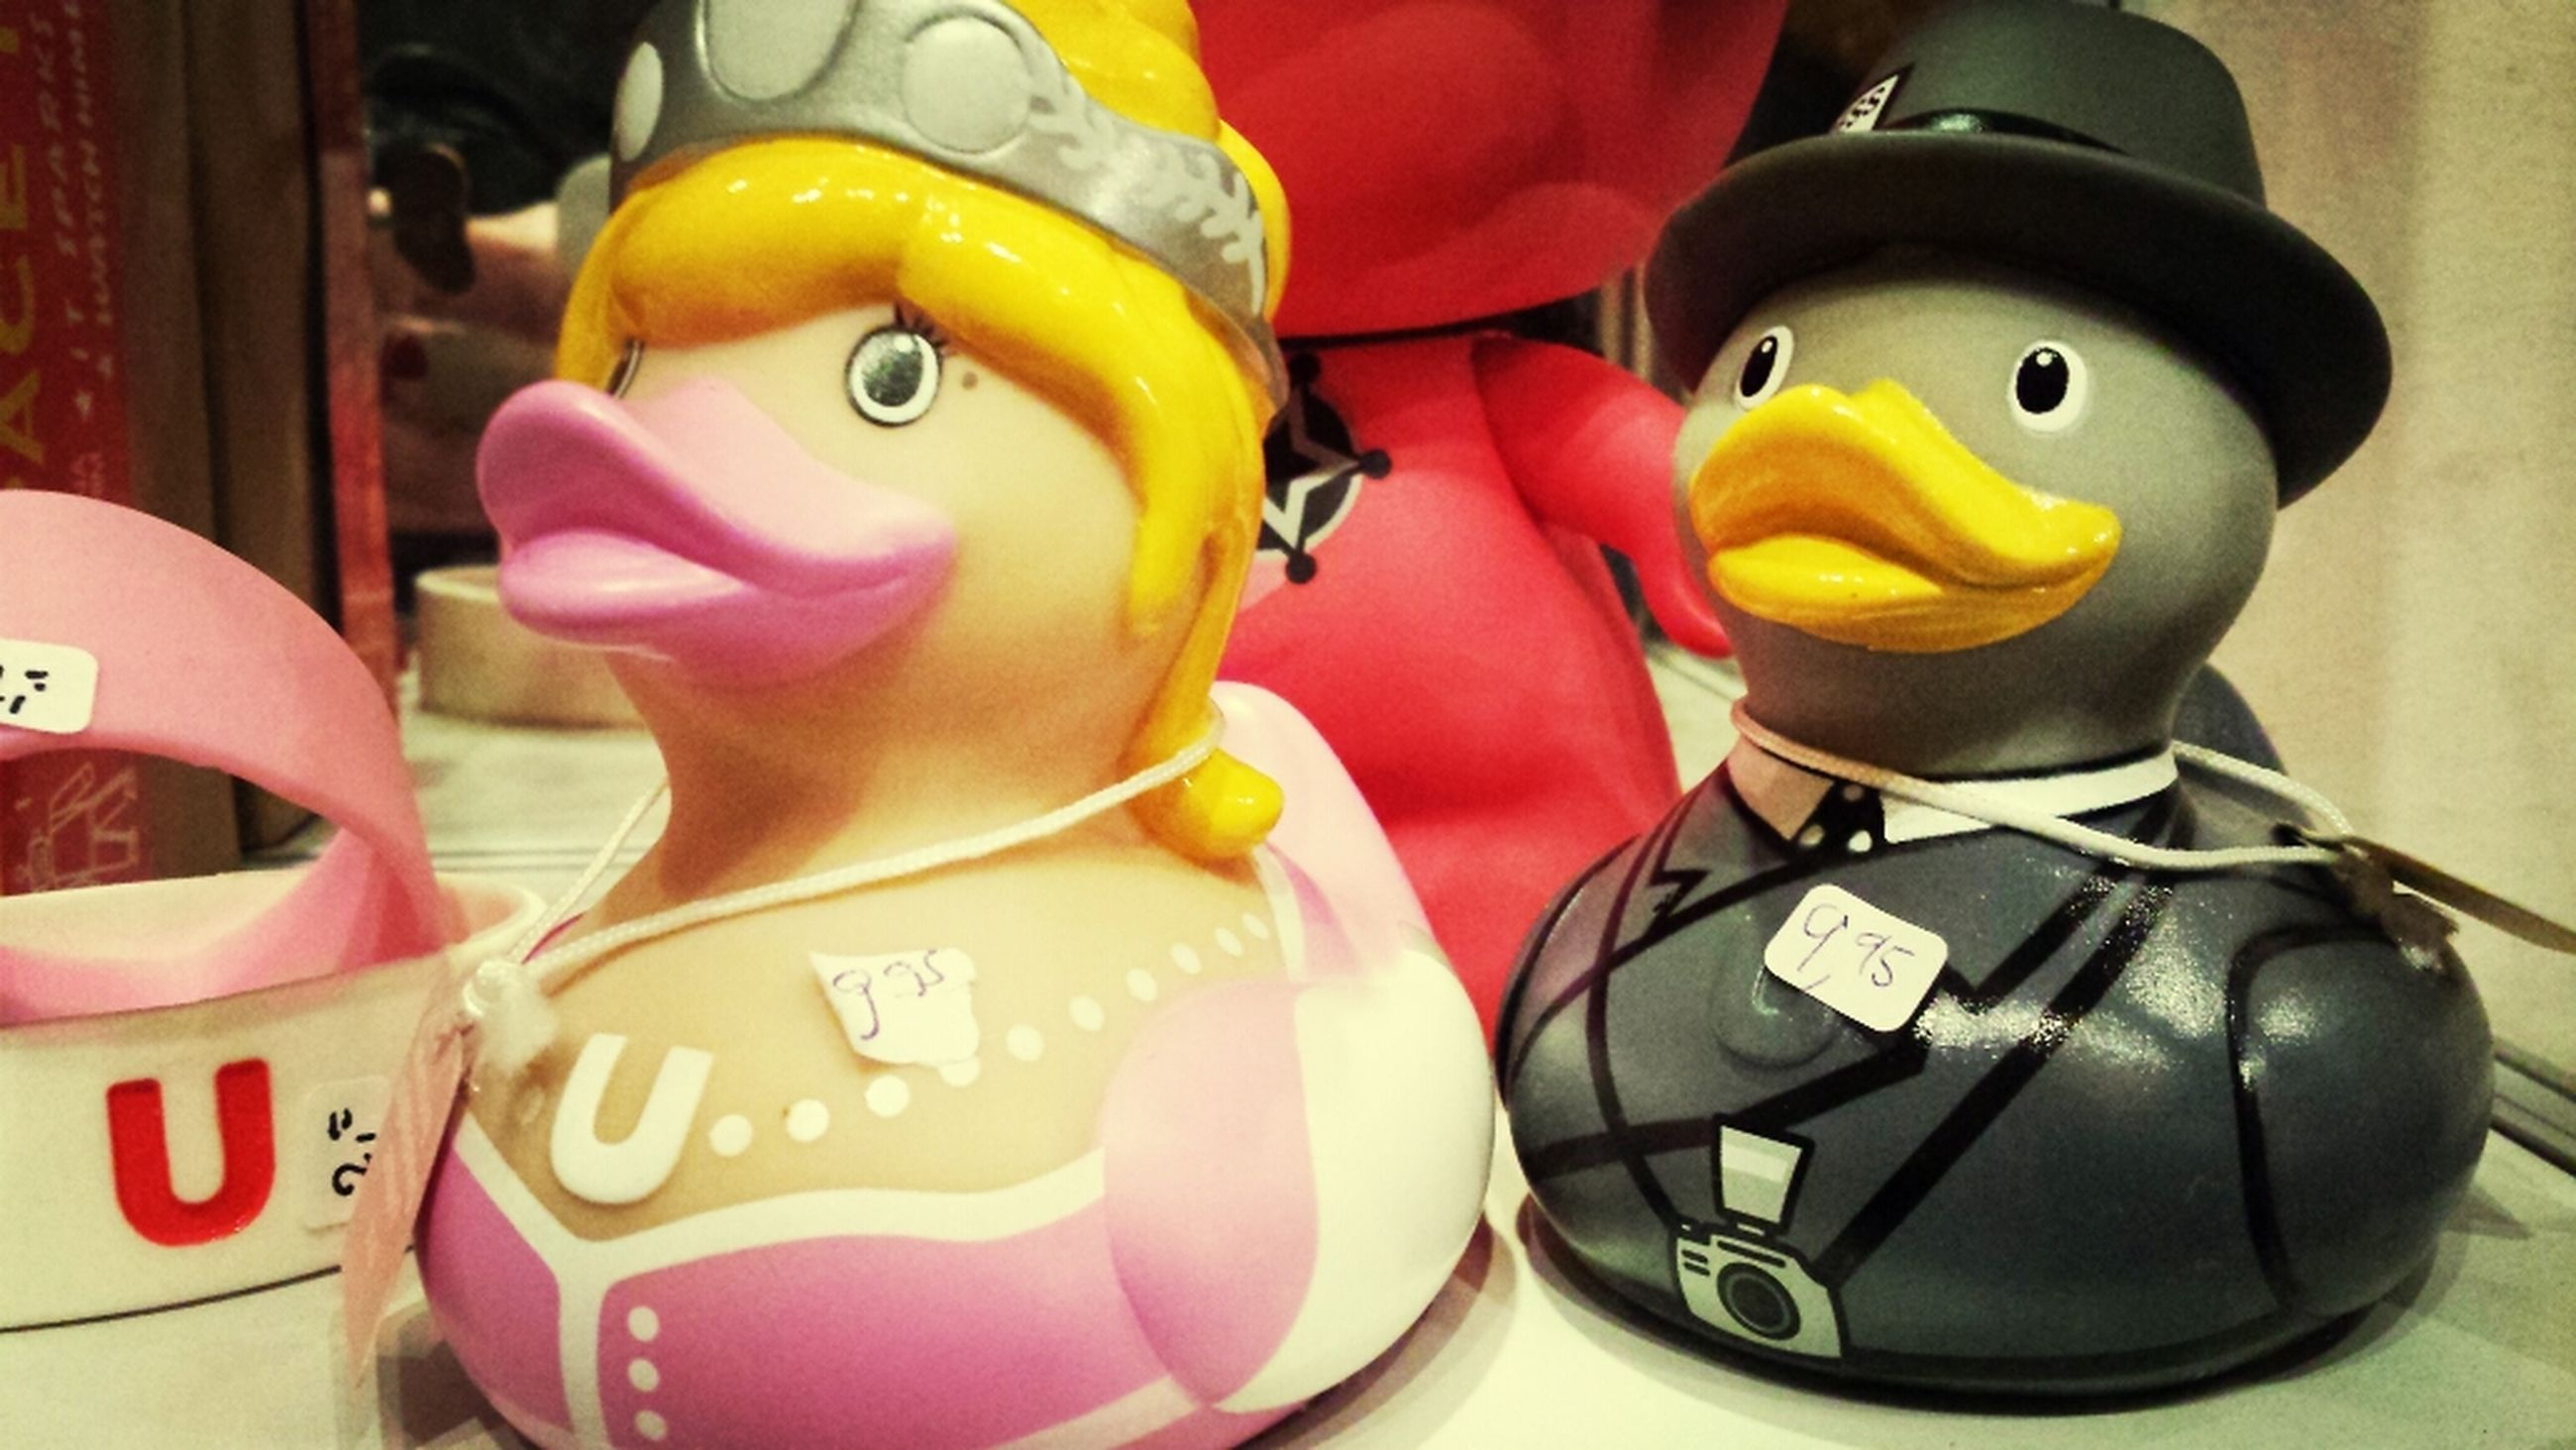 Bathduck Red Light District Fun Toys